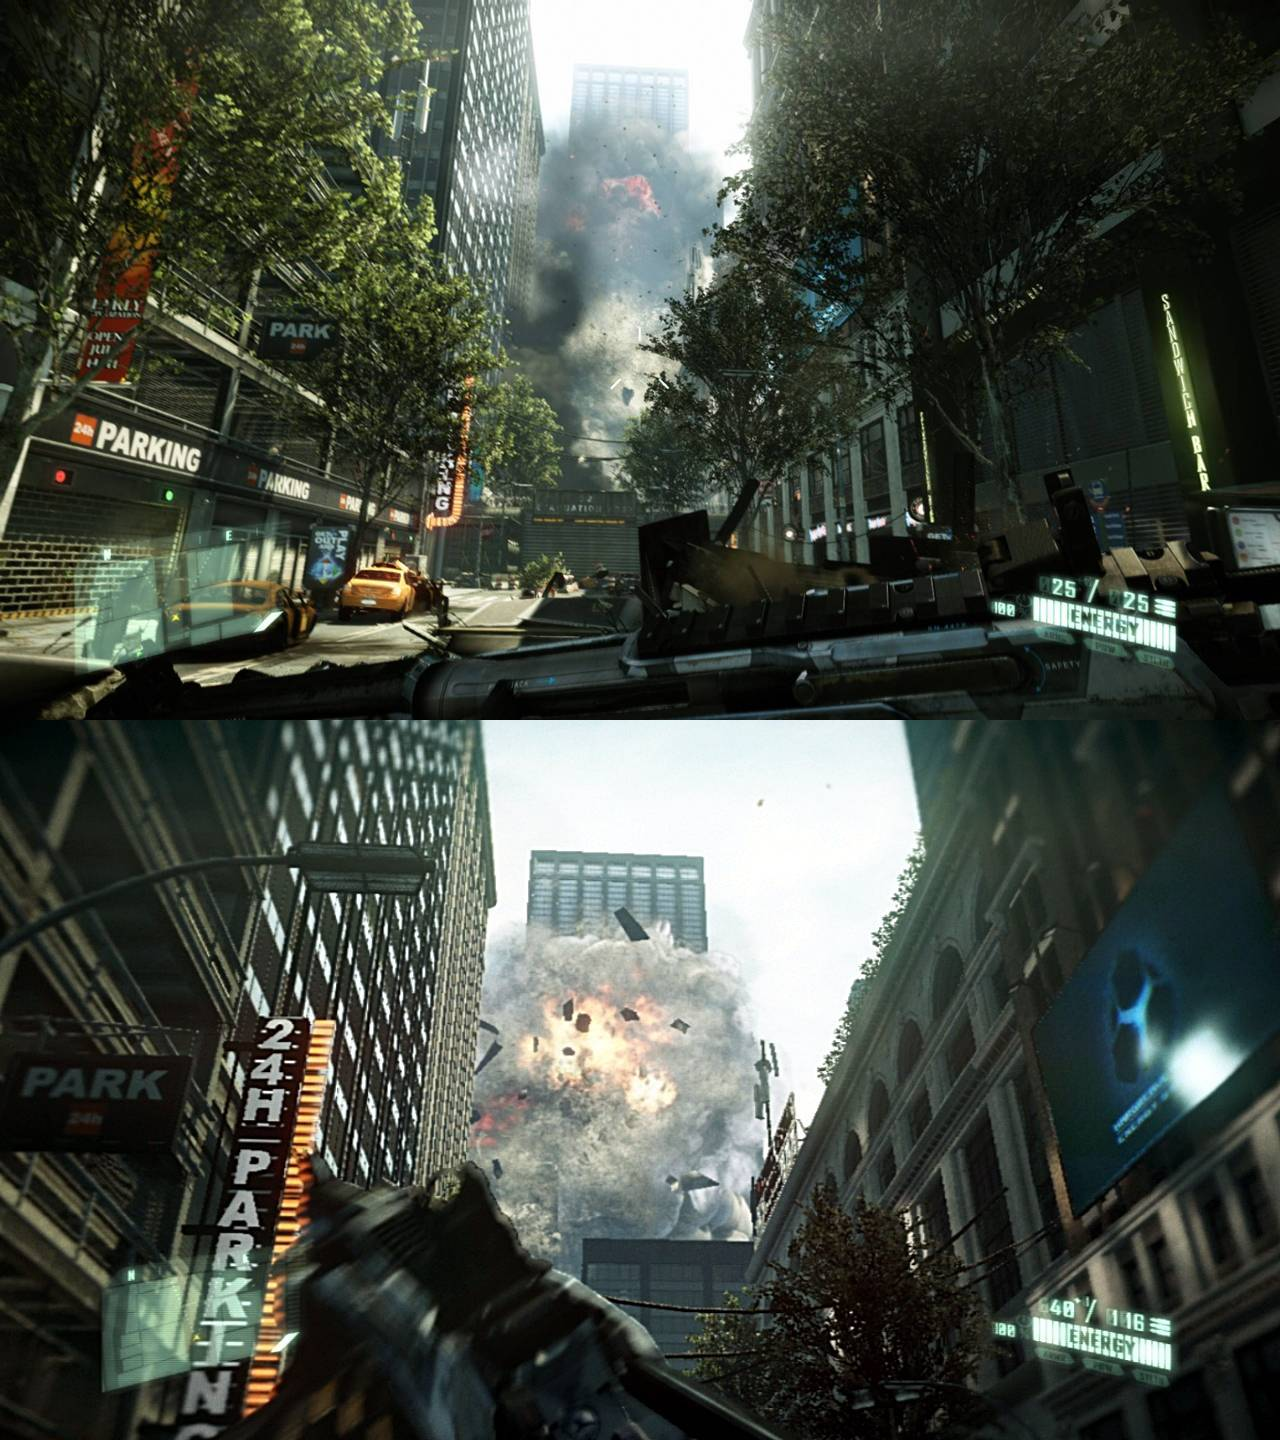 Gtx 970 Vs 1070 >> PS4 must in 2012?, Crysis 2 PC DX 11 vs PS3 screenshot comparison